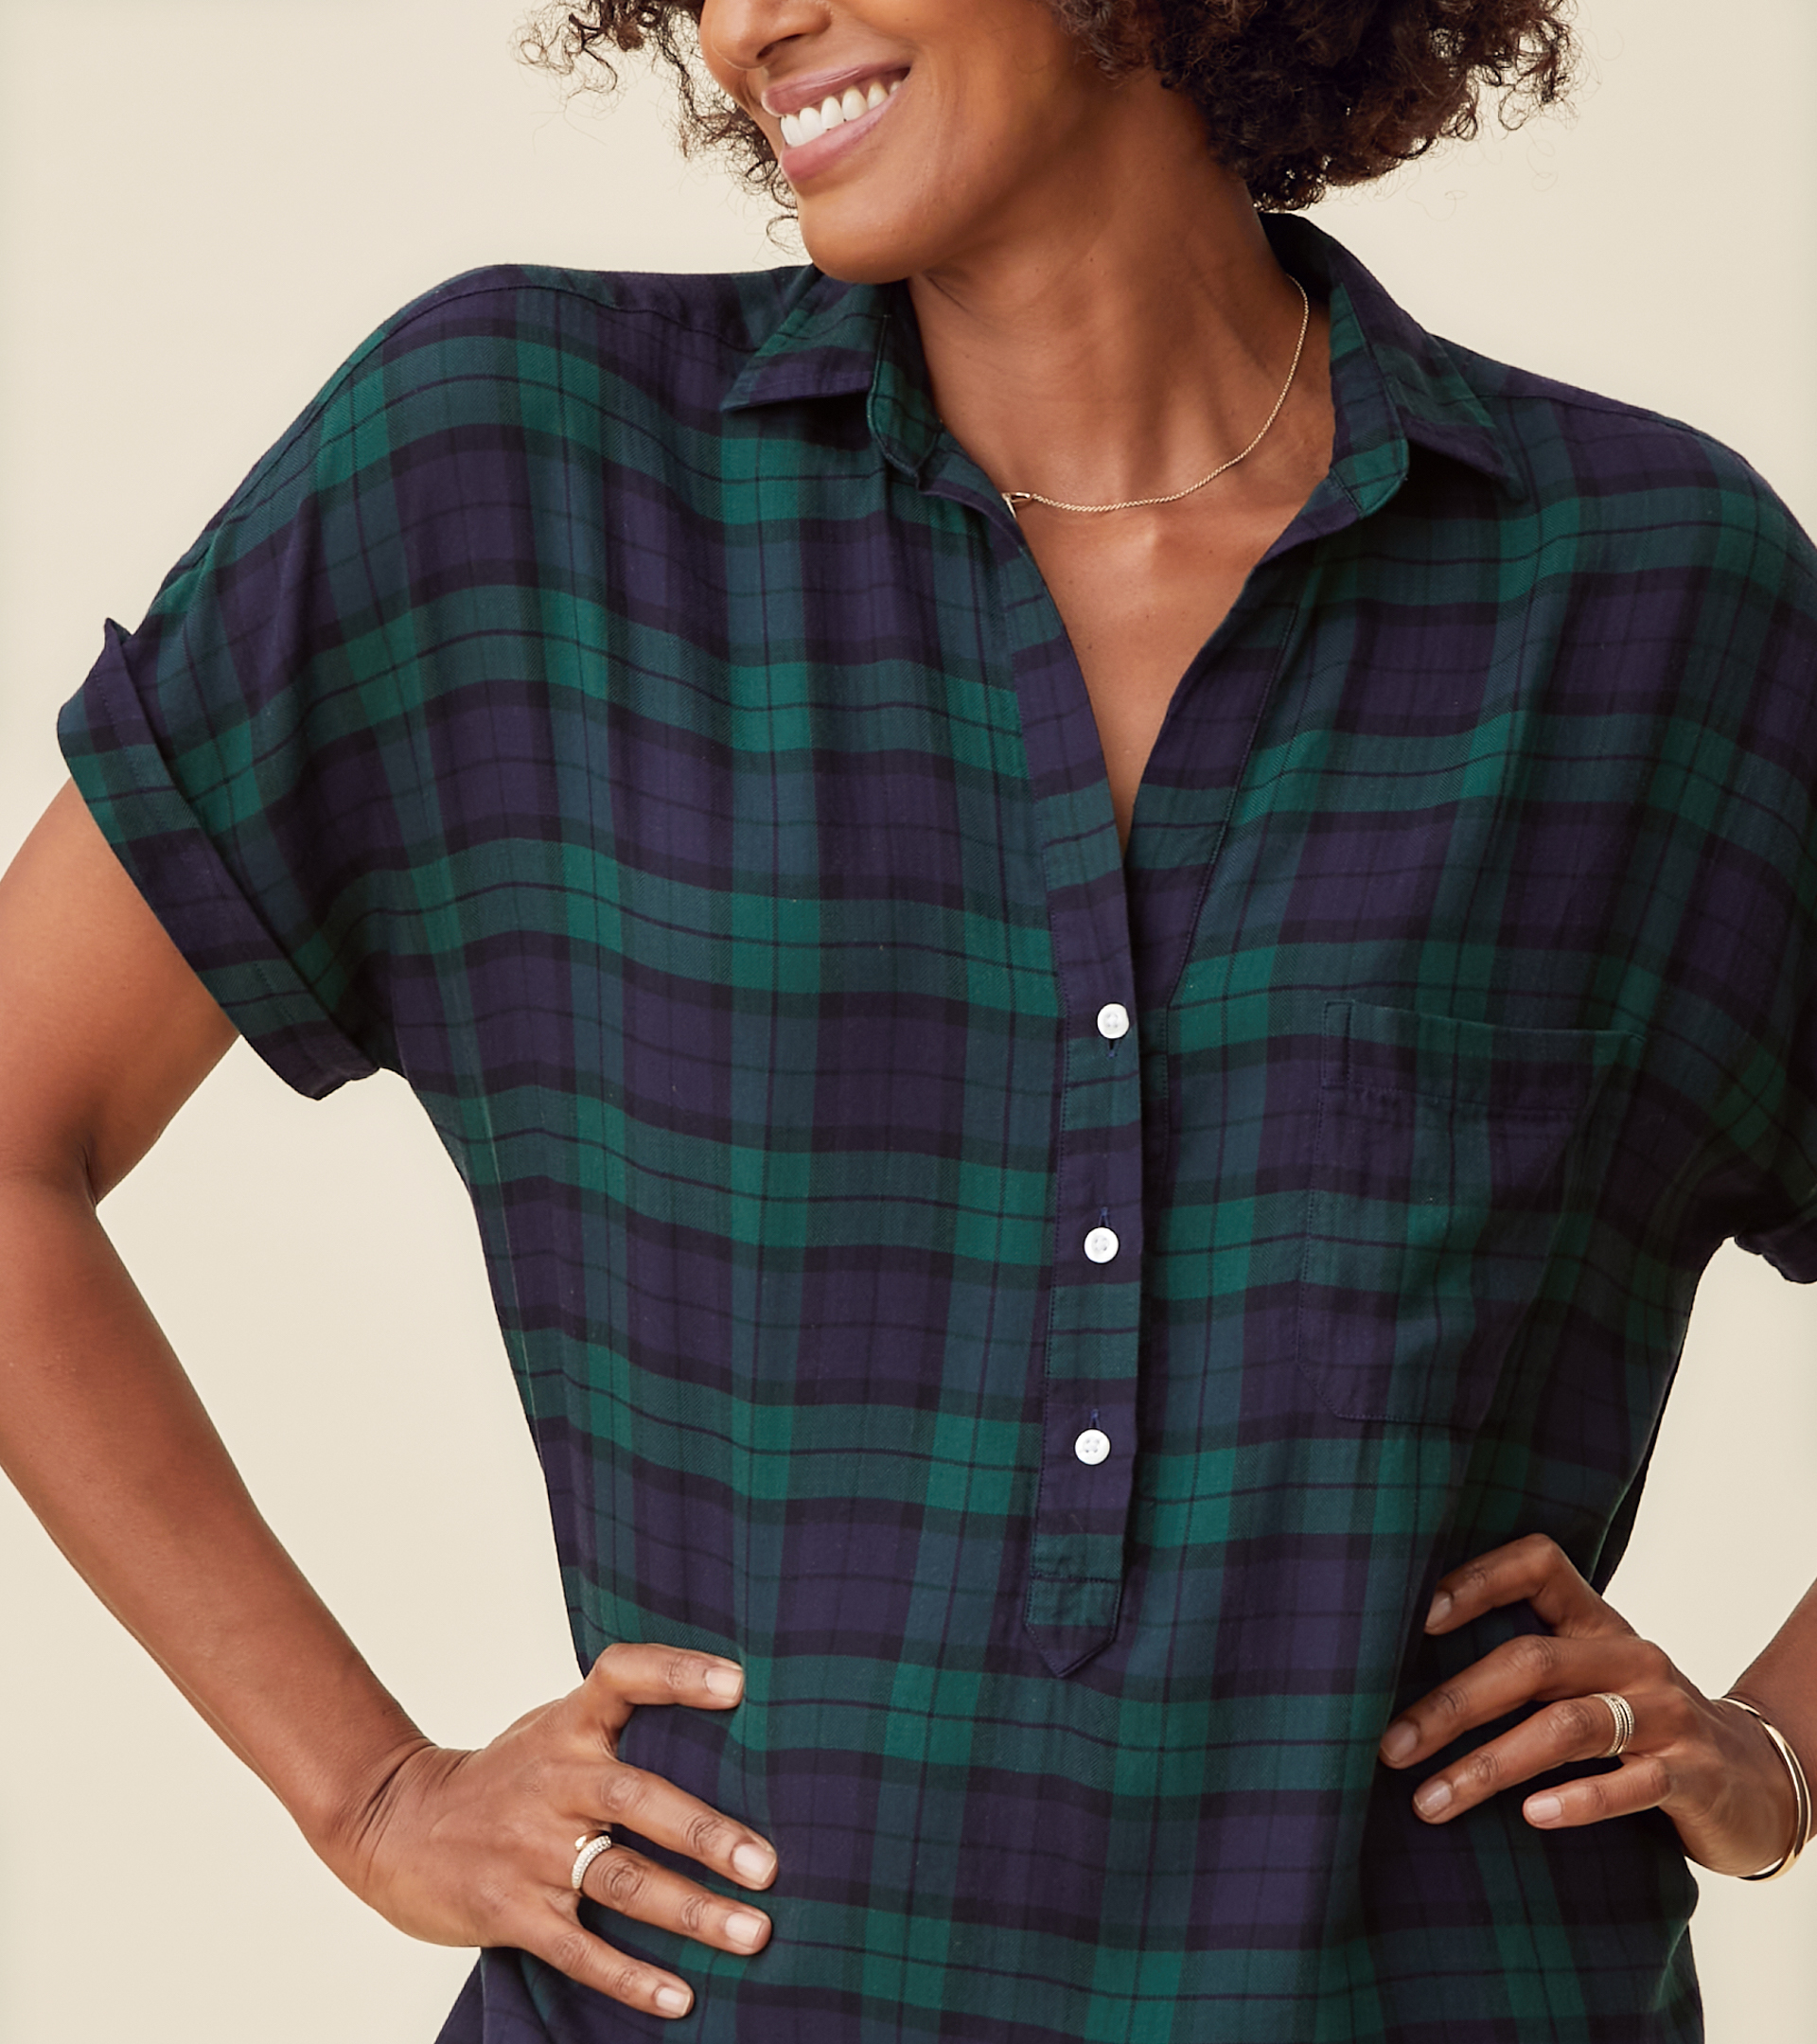 The Artist Short Sleeve Dress Navy with Green Plaid, Liquid Flannel view 2